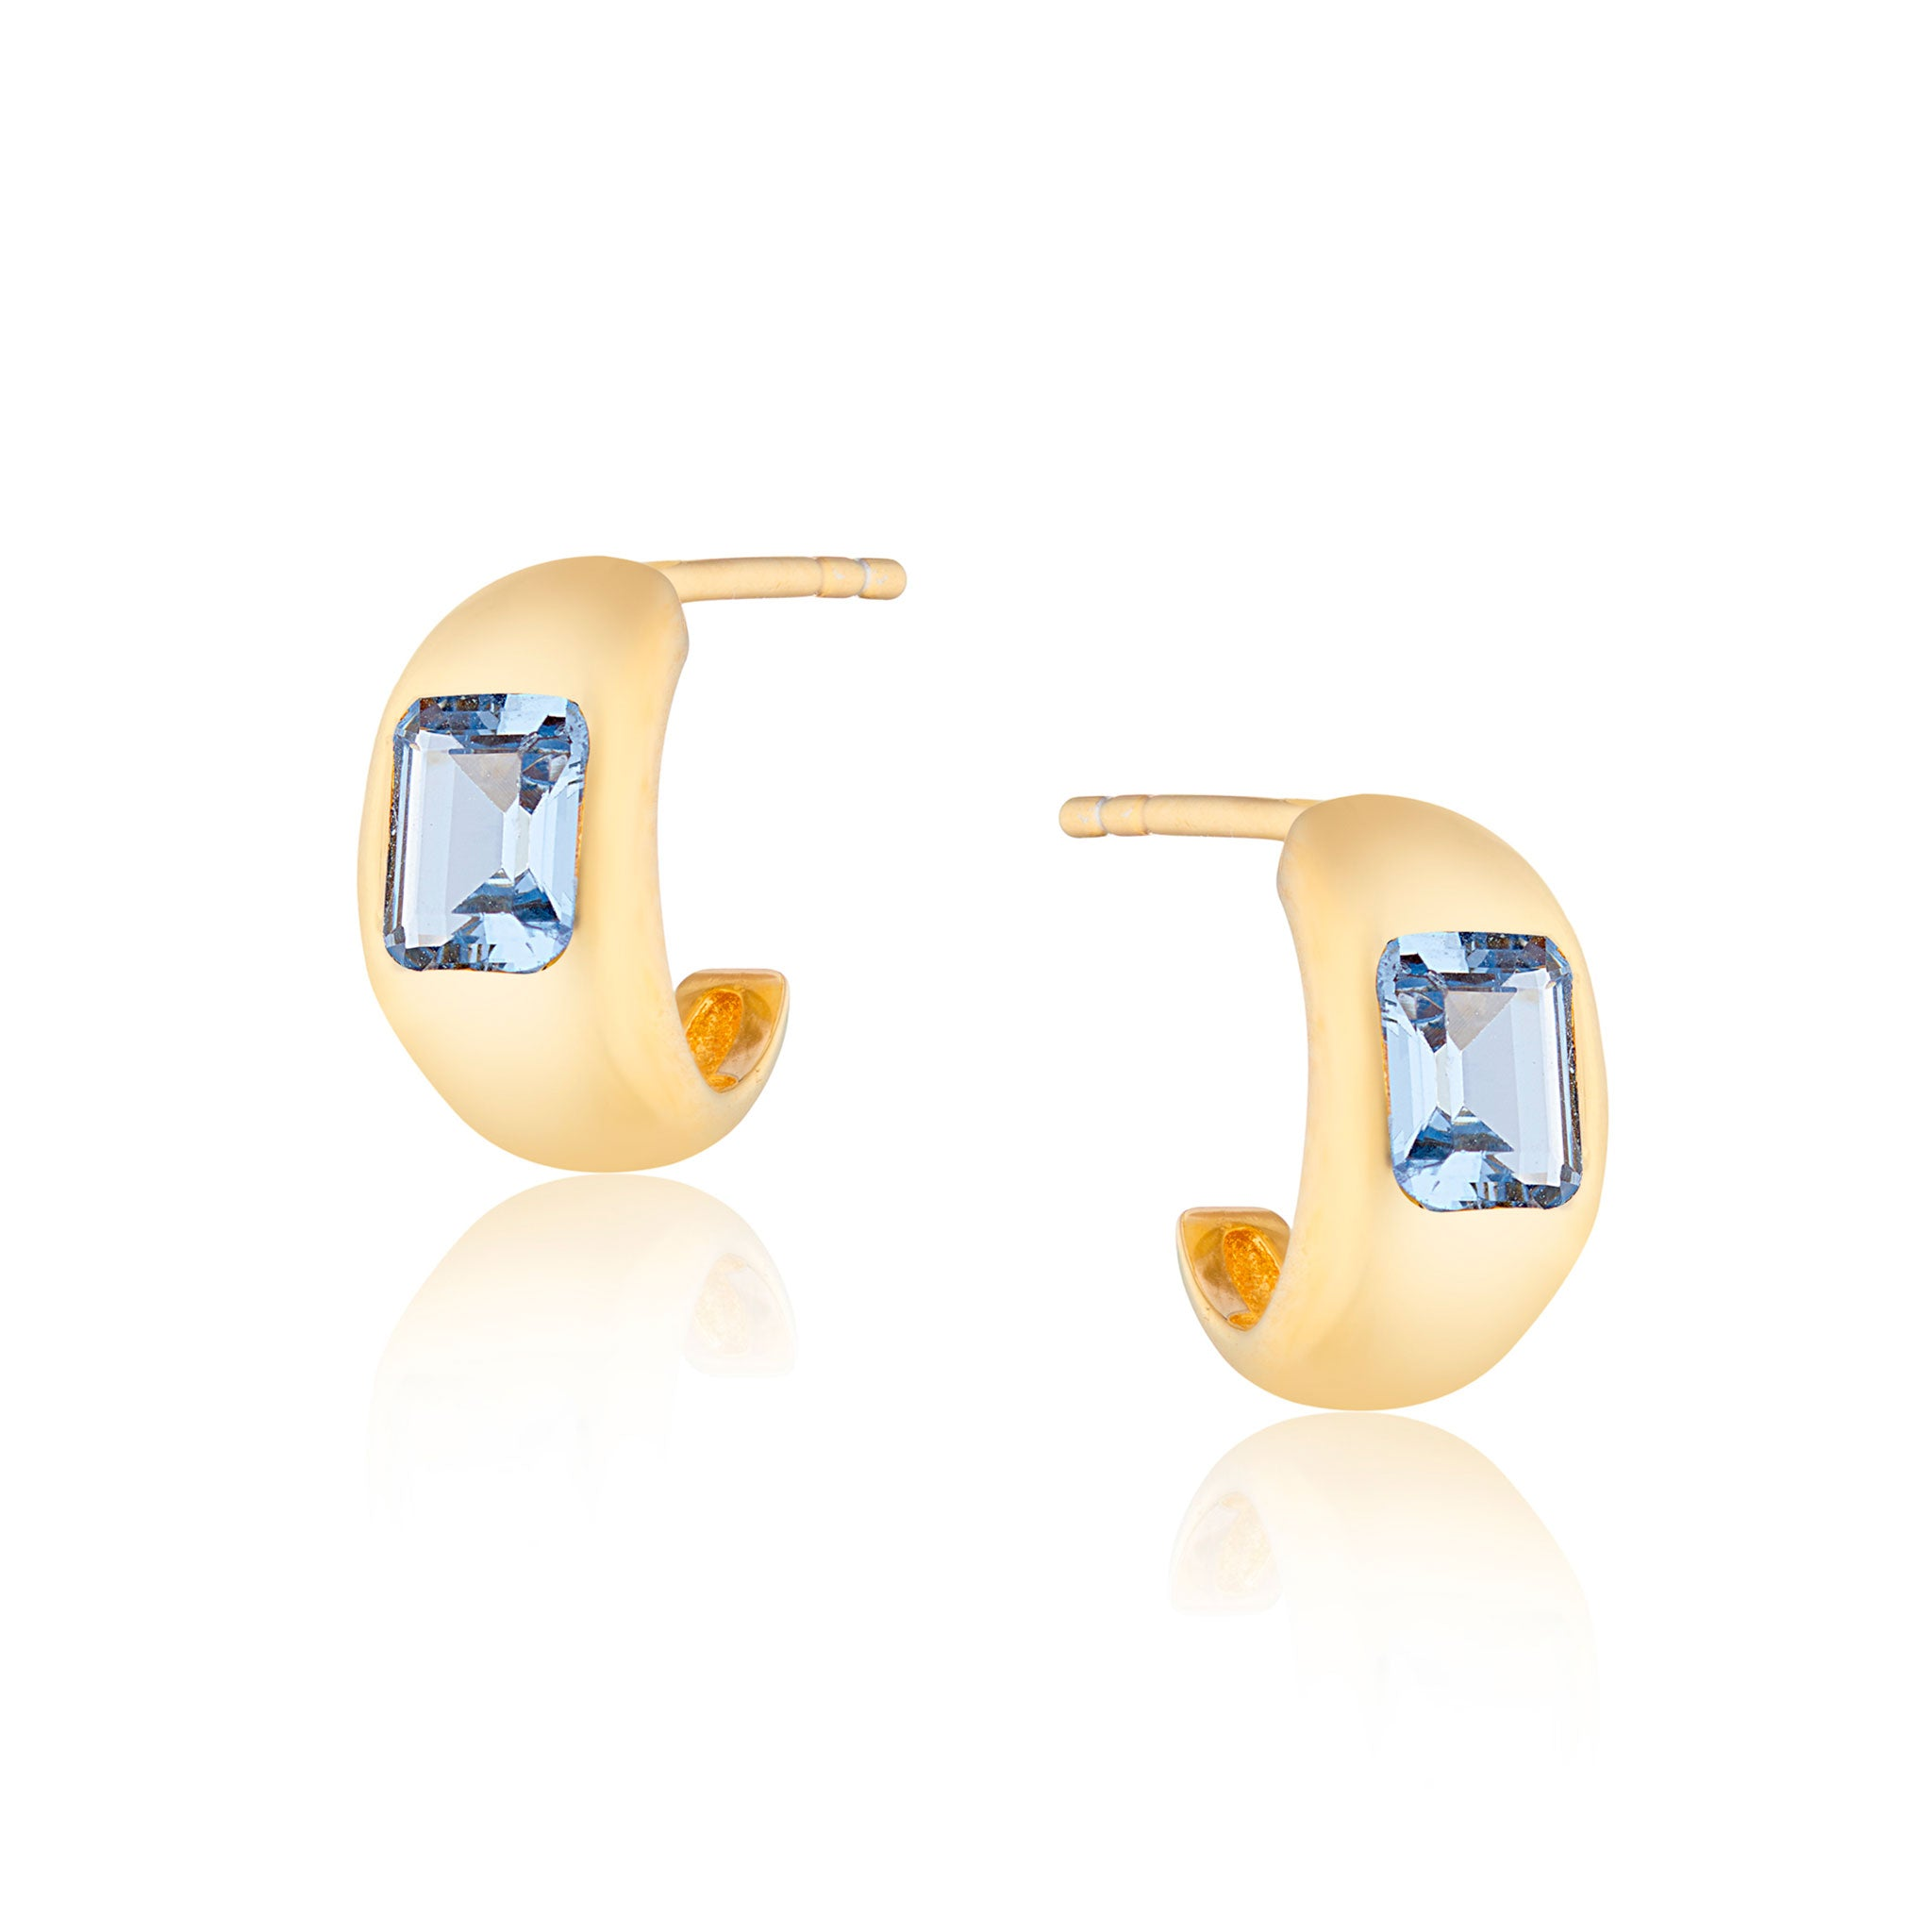 Diana Mini Chubby Spinel Blue Stone Hoop Earrings in Gold